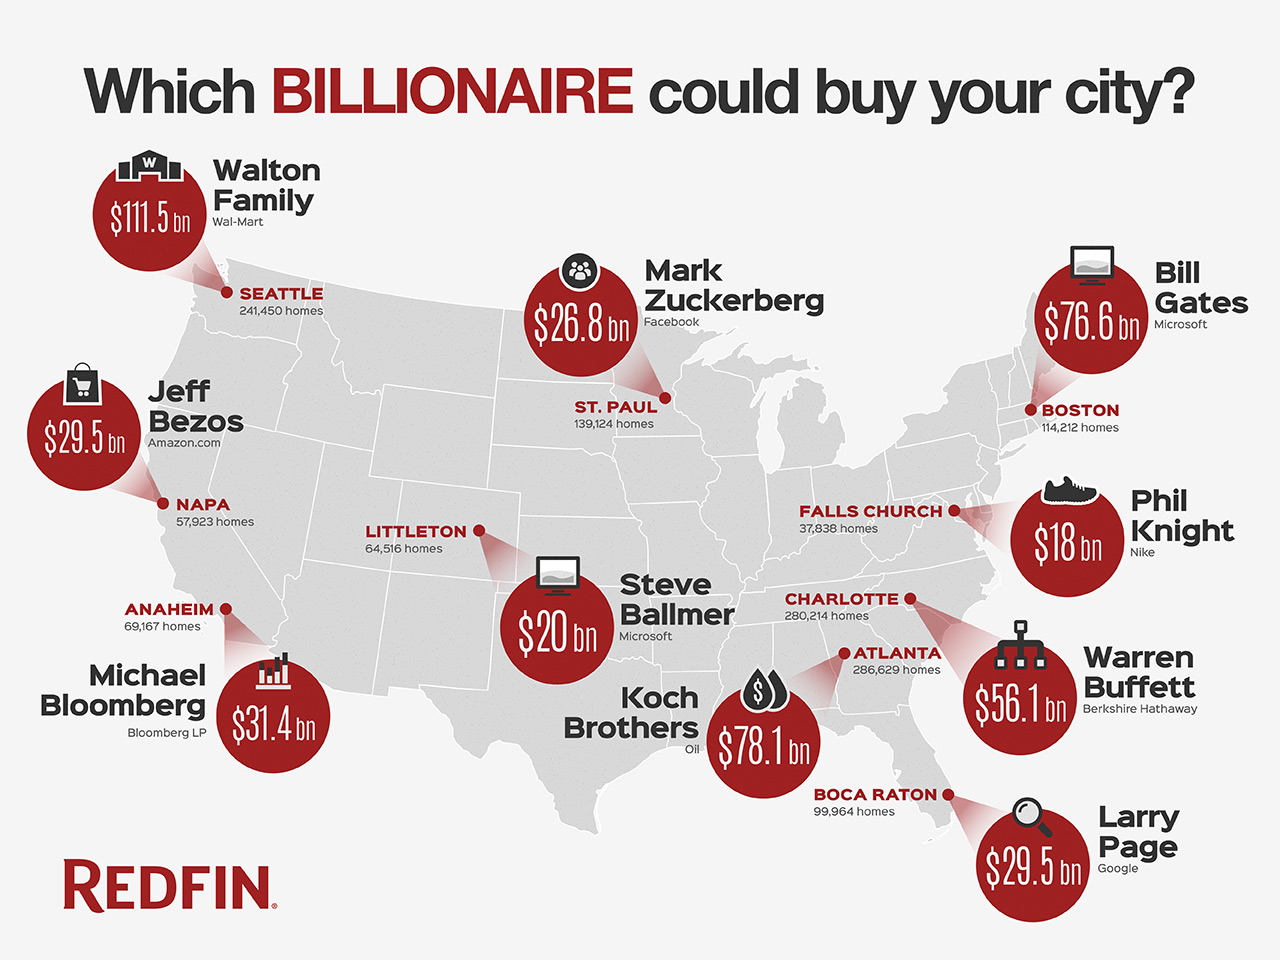 Which billionaire could buy your city?